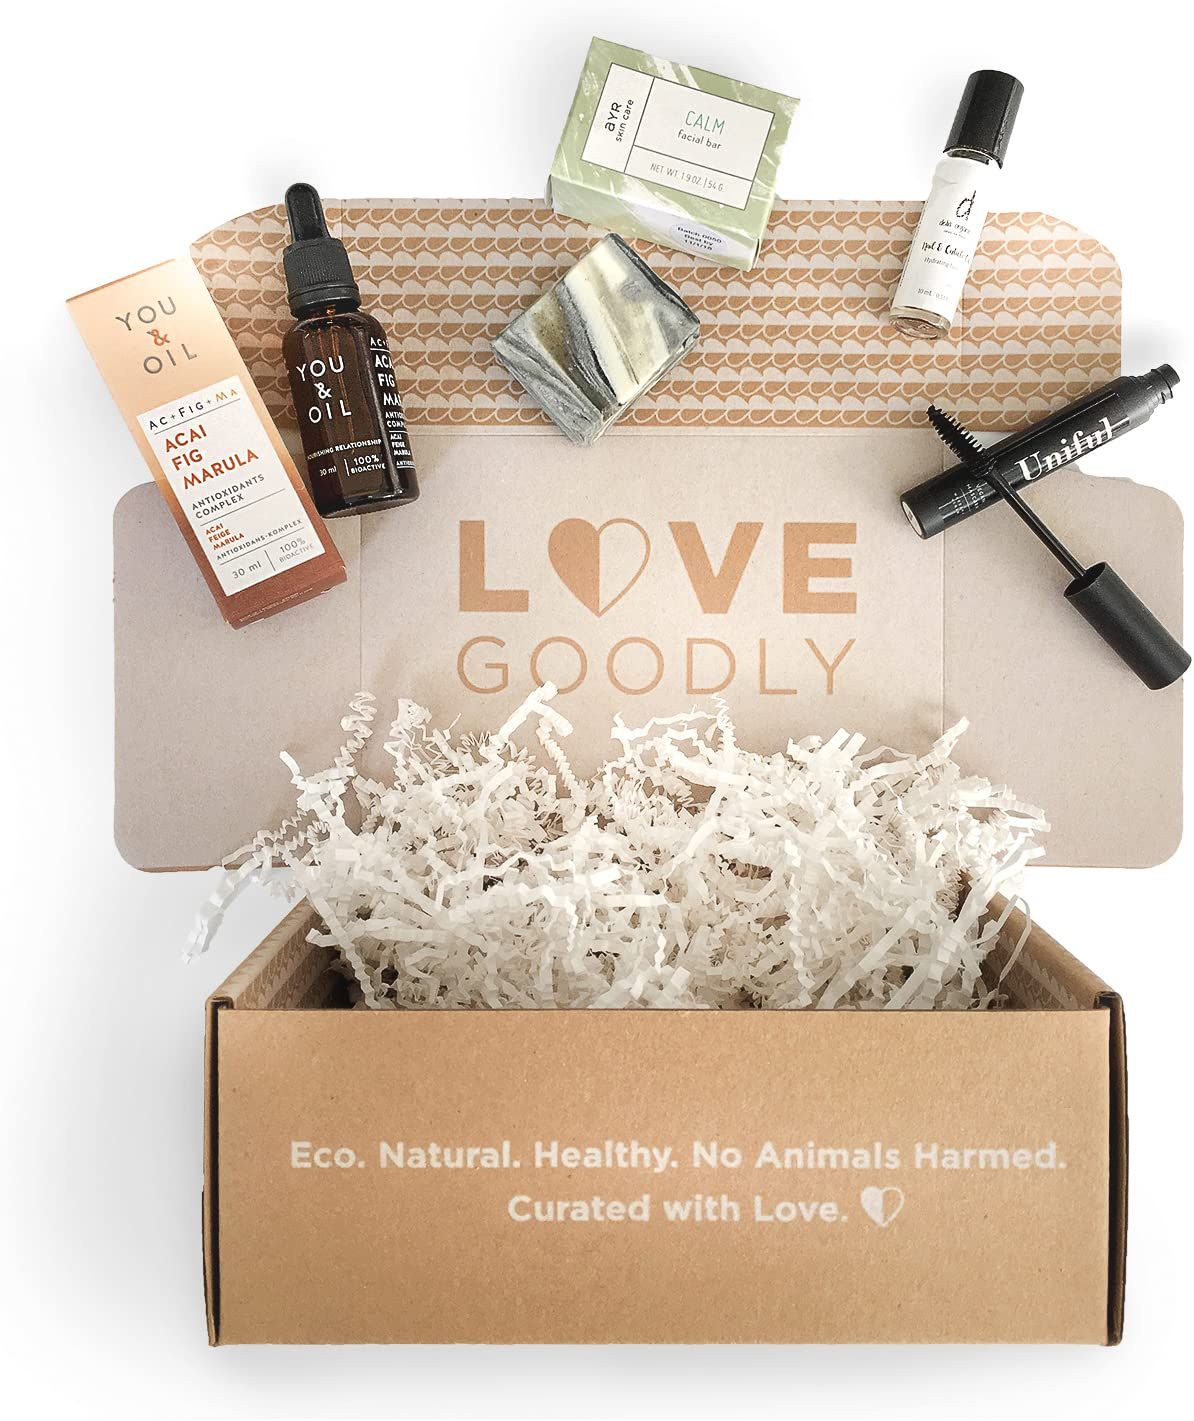 10 Luxury Beauty Subscription Boxes on Amazon for Mother's Day -   19 organic beauty Box ideas